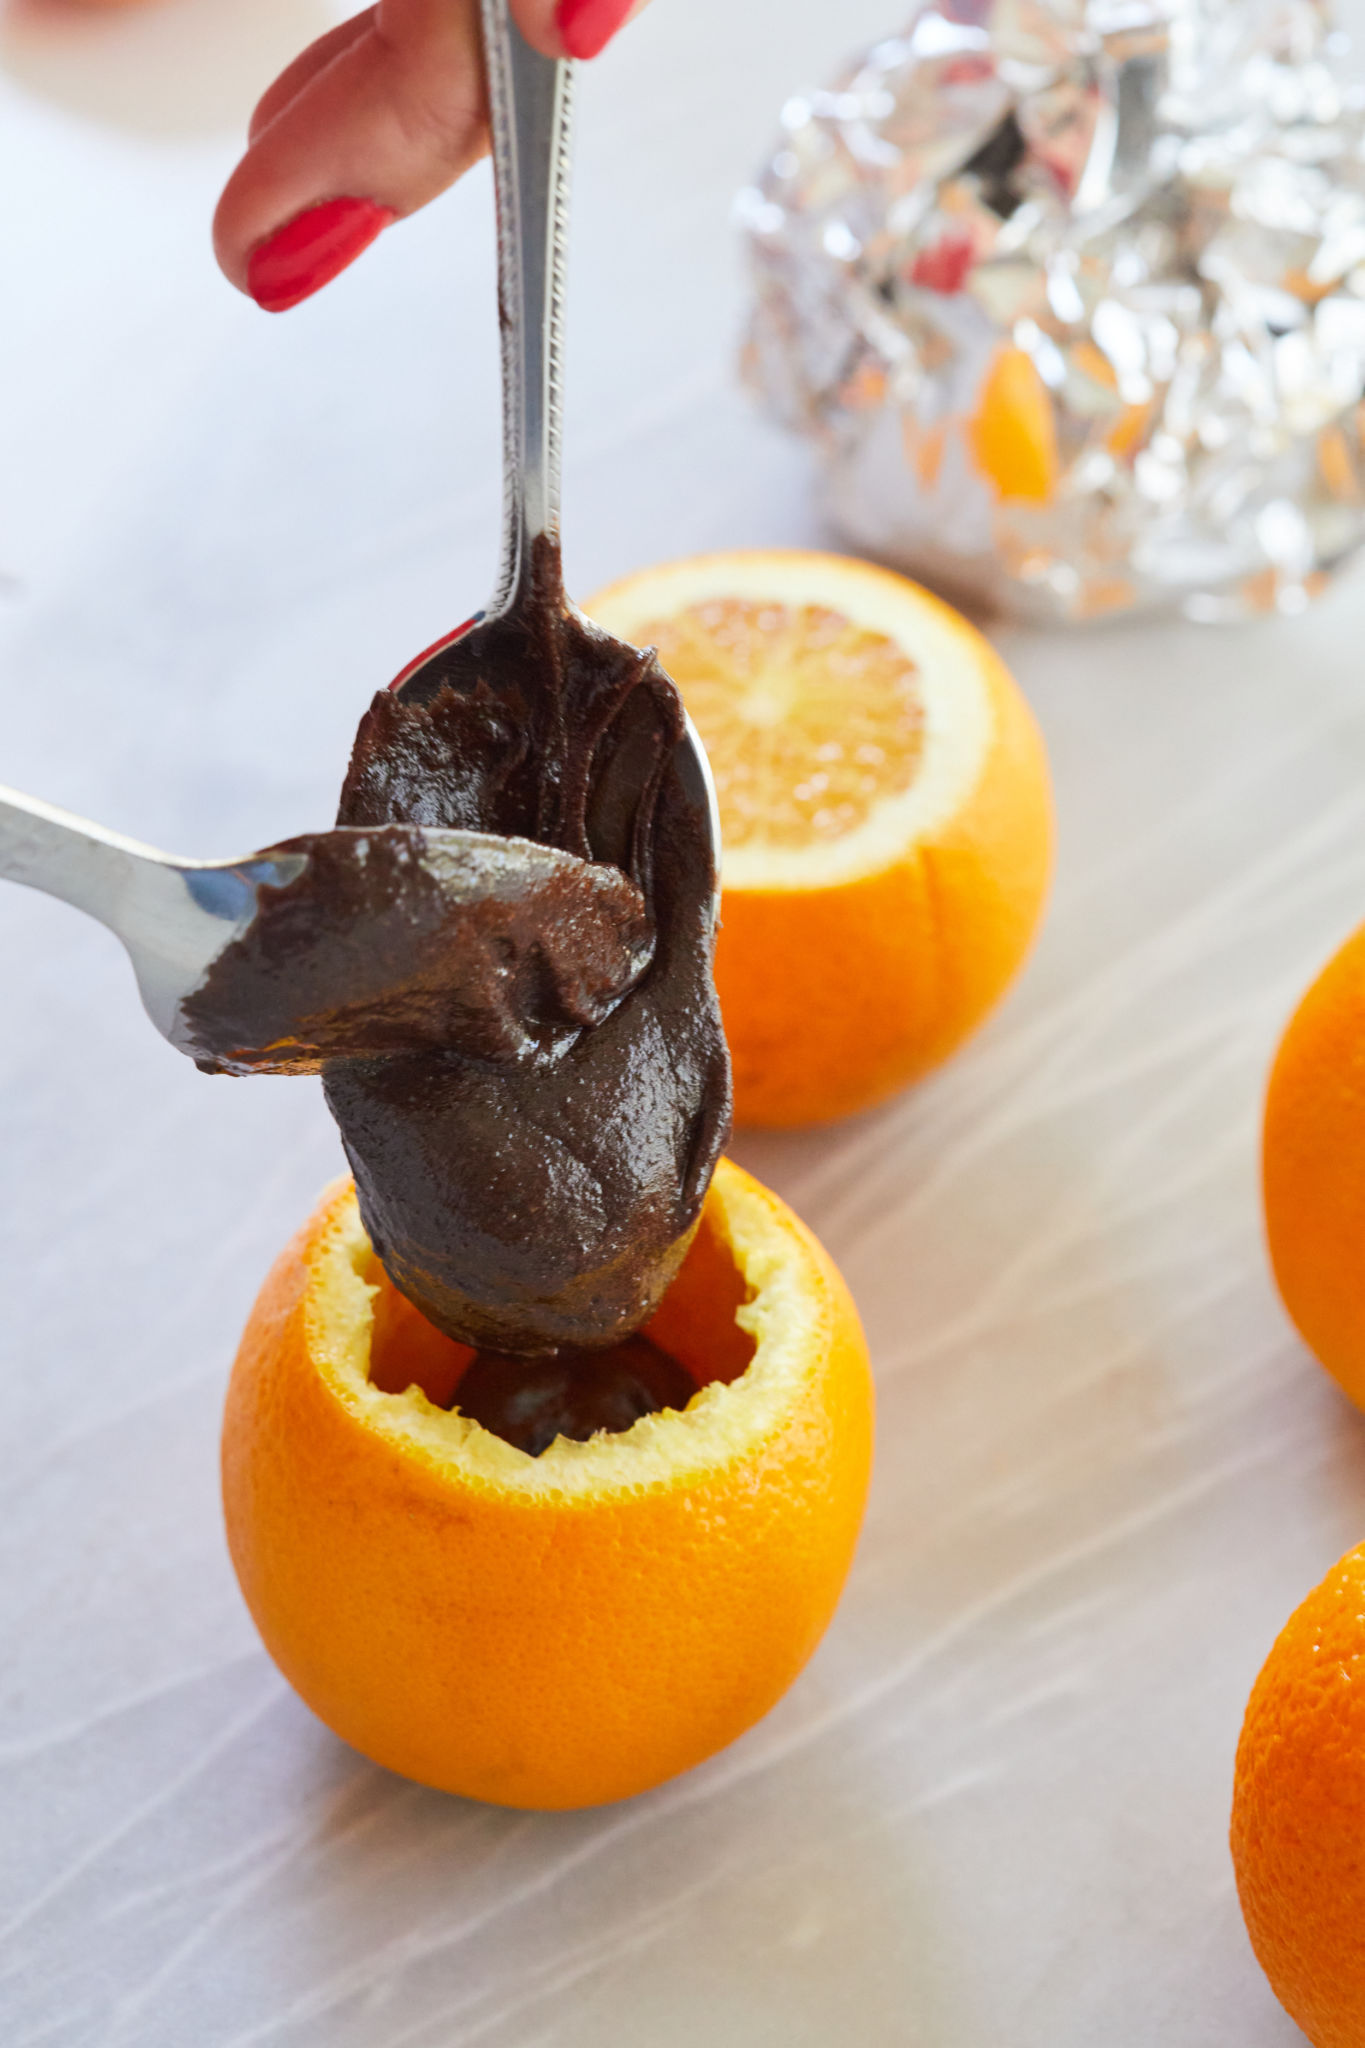 Spoons pouring batter into the shell of an orange.